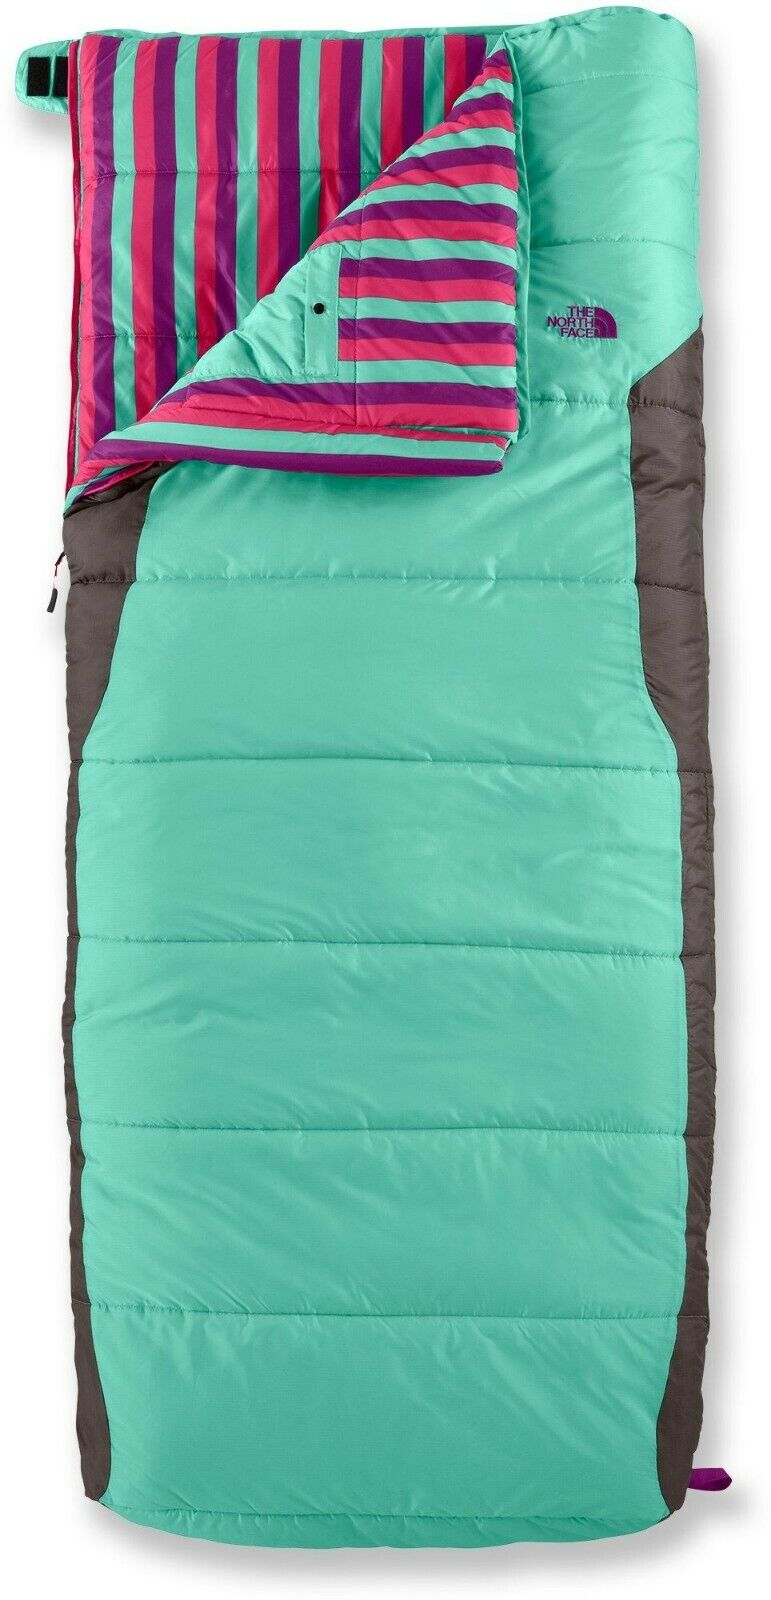 The North Face Dolomite 3S Sleeping sac YOUTH  20F -7C REG RIGHT HAND nouveau